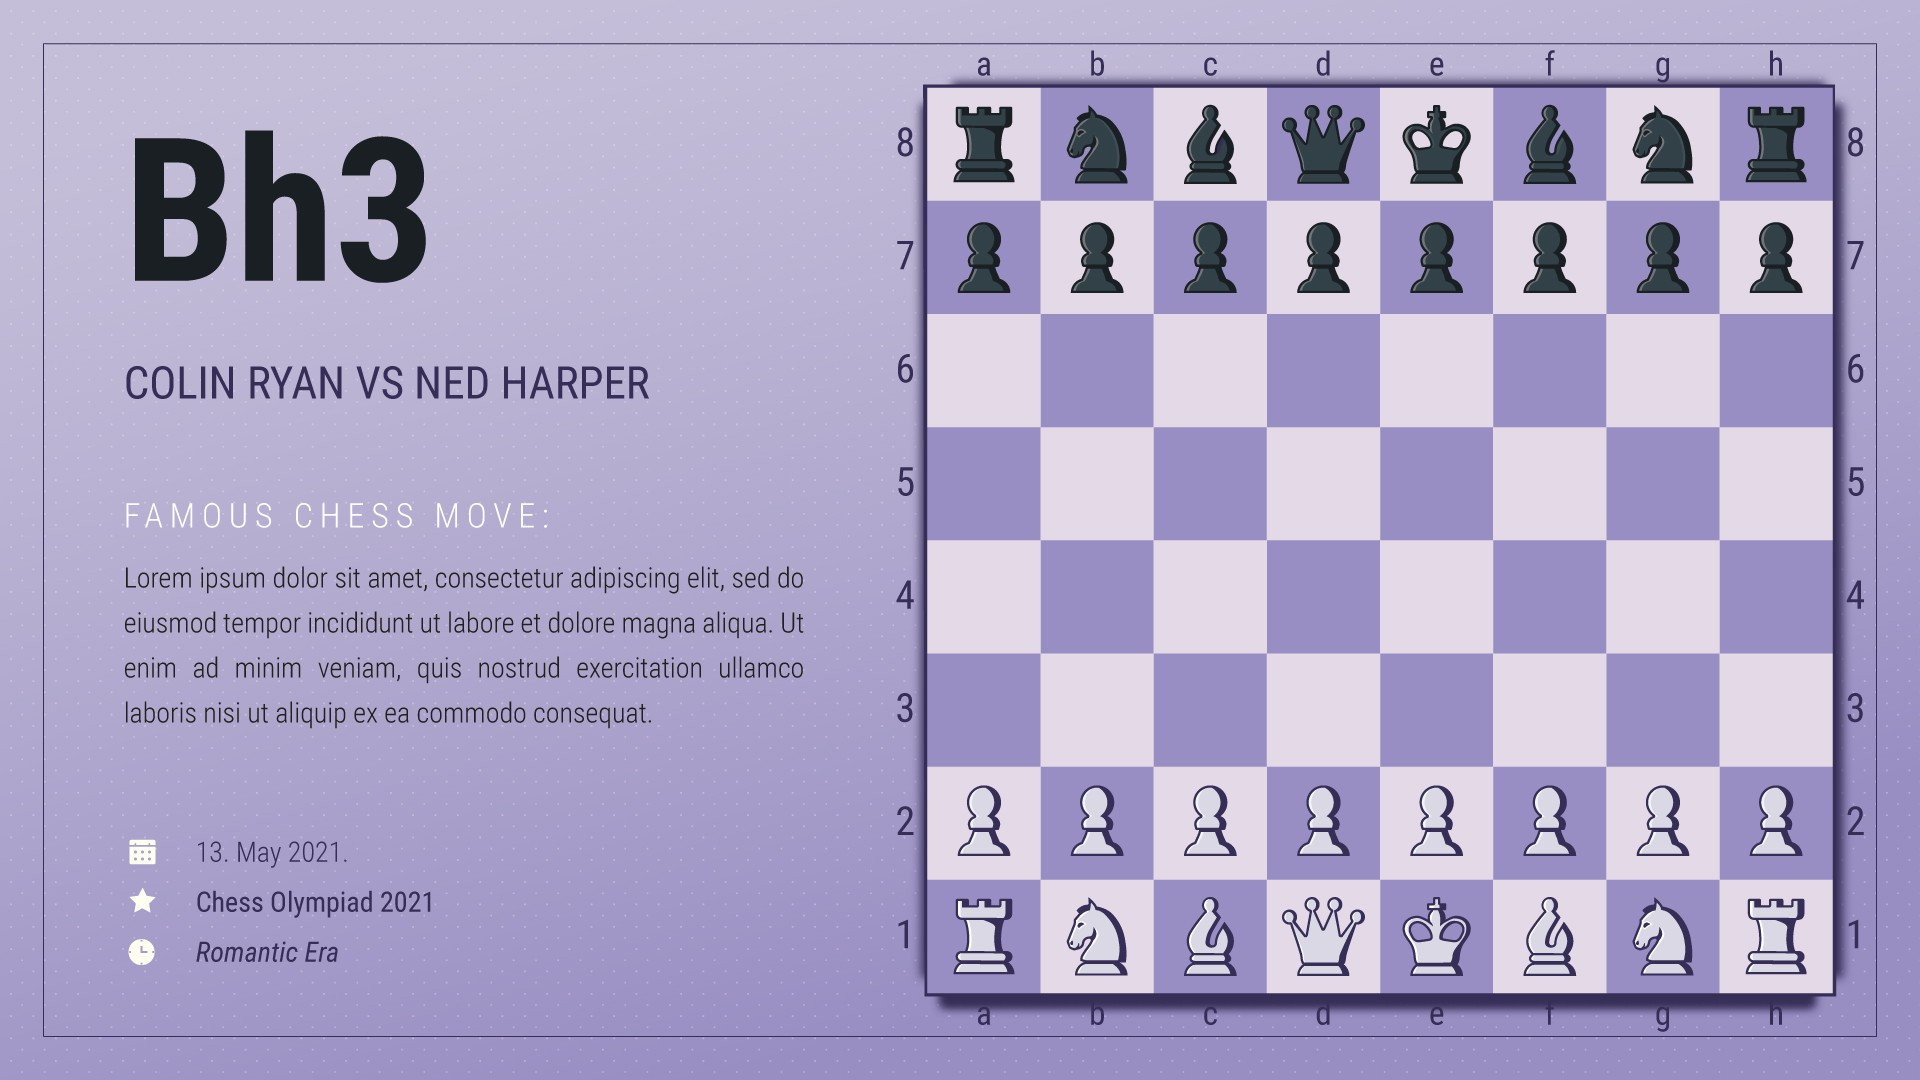 Diagram for famous chess moves